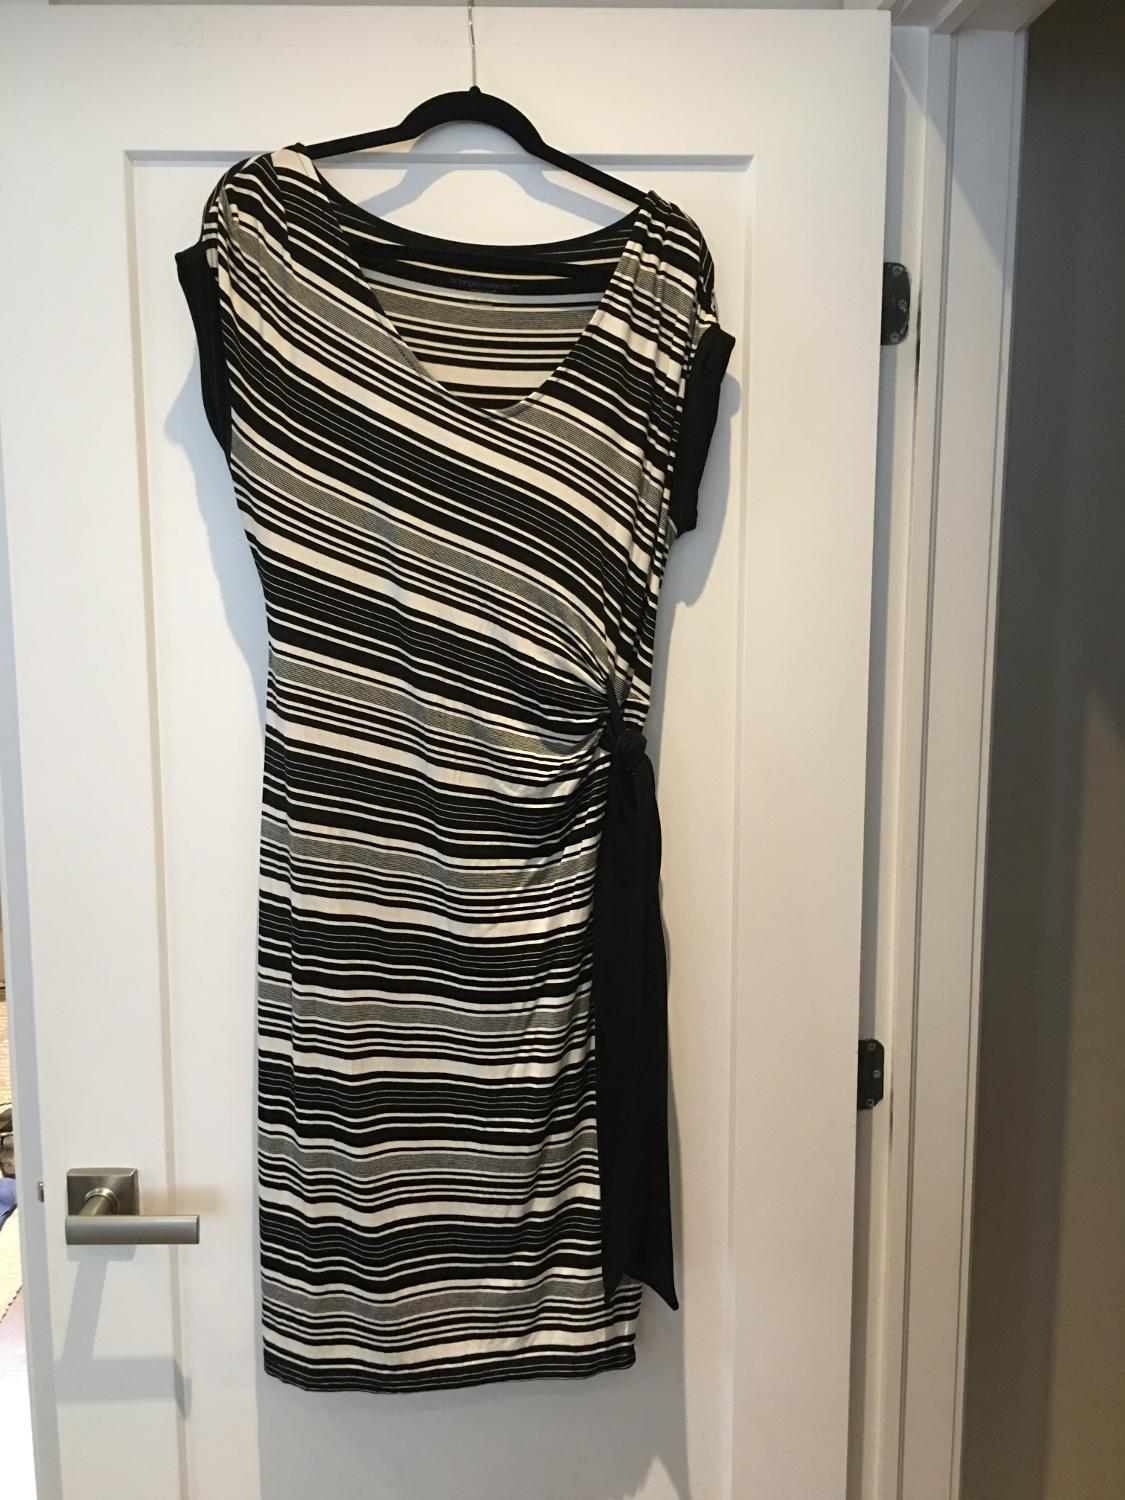 0b74c54aedca5 Find more Liz Lange Maternity Black & White Dress In Xl for sale at ...